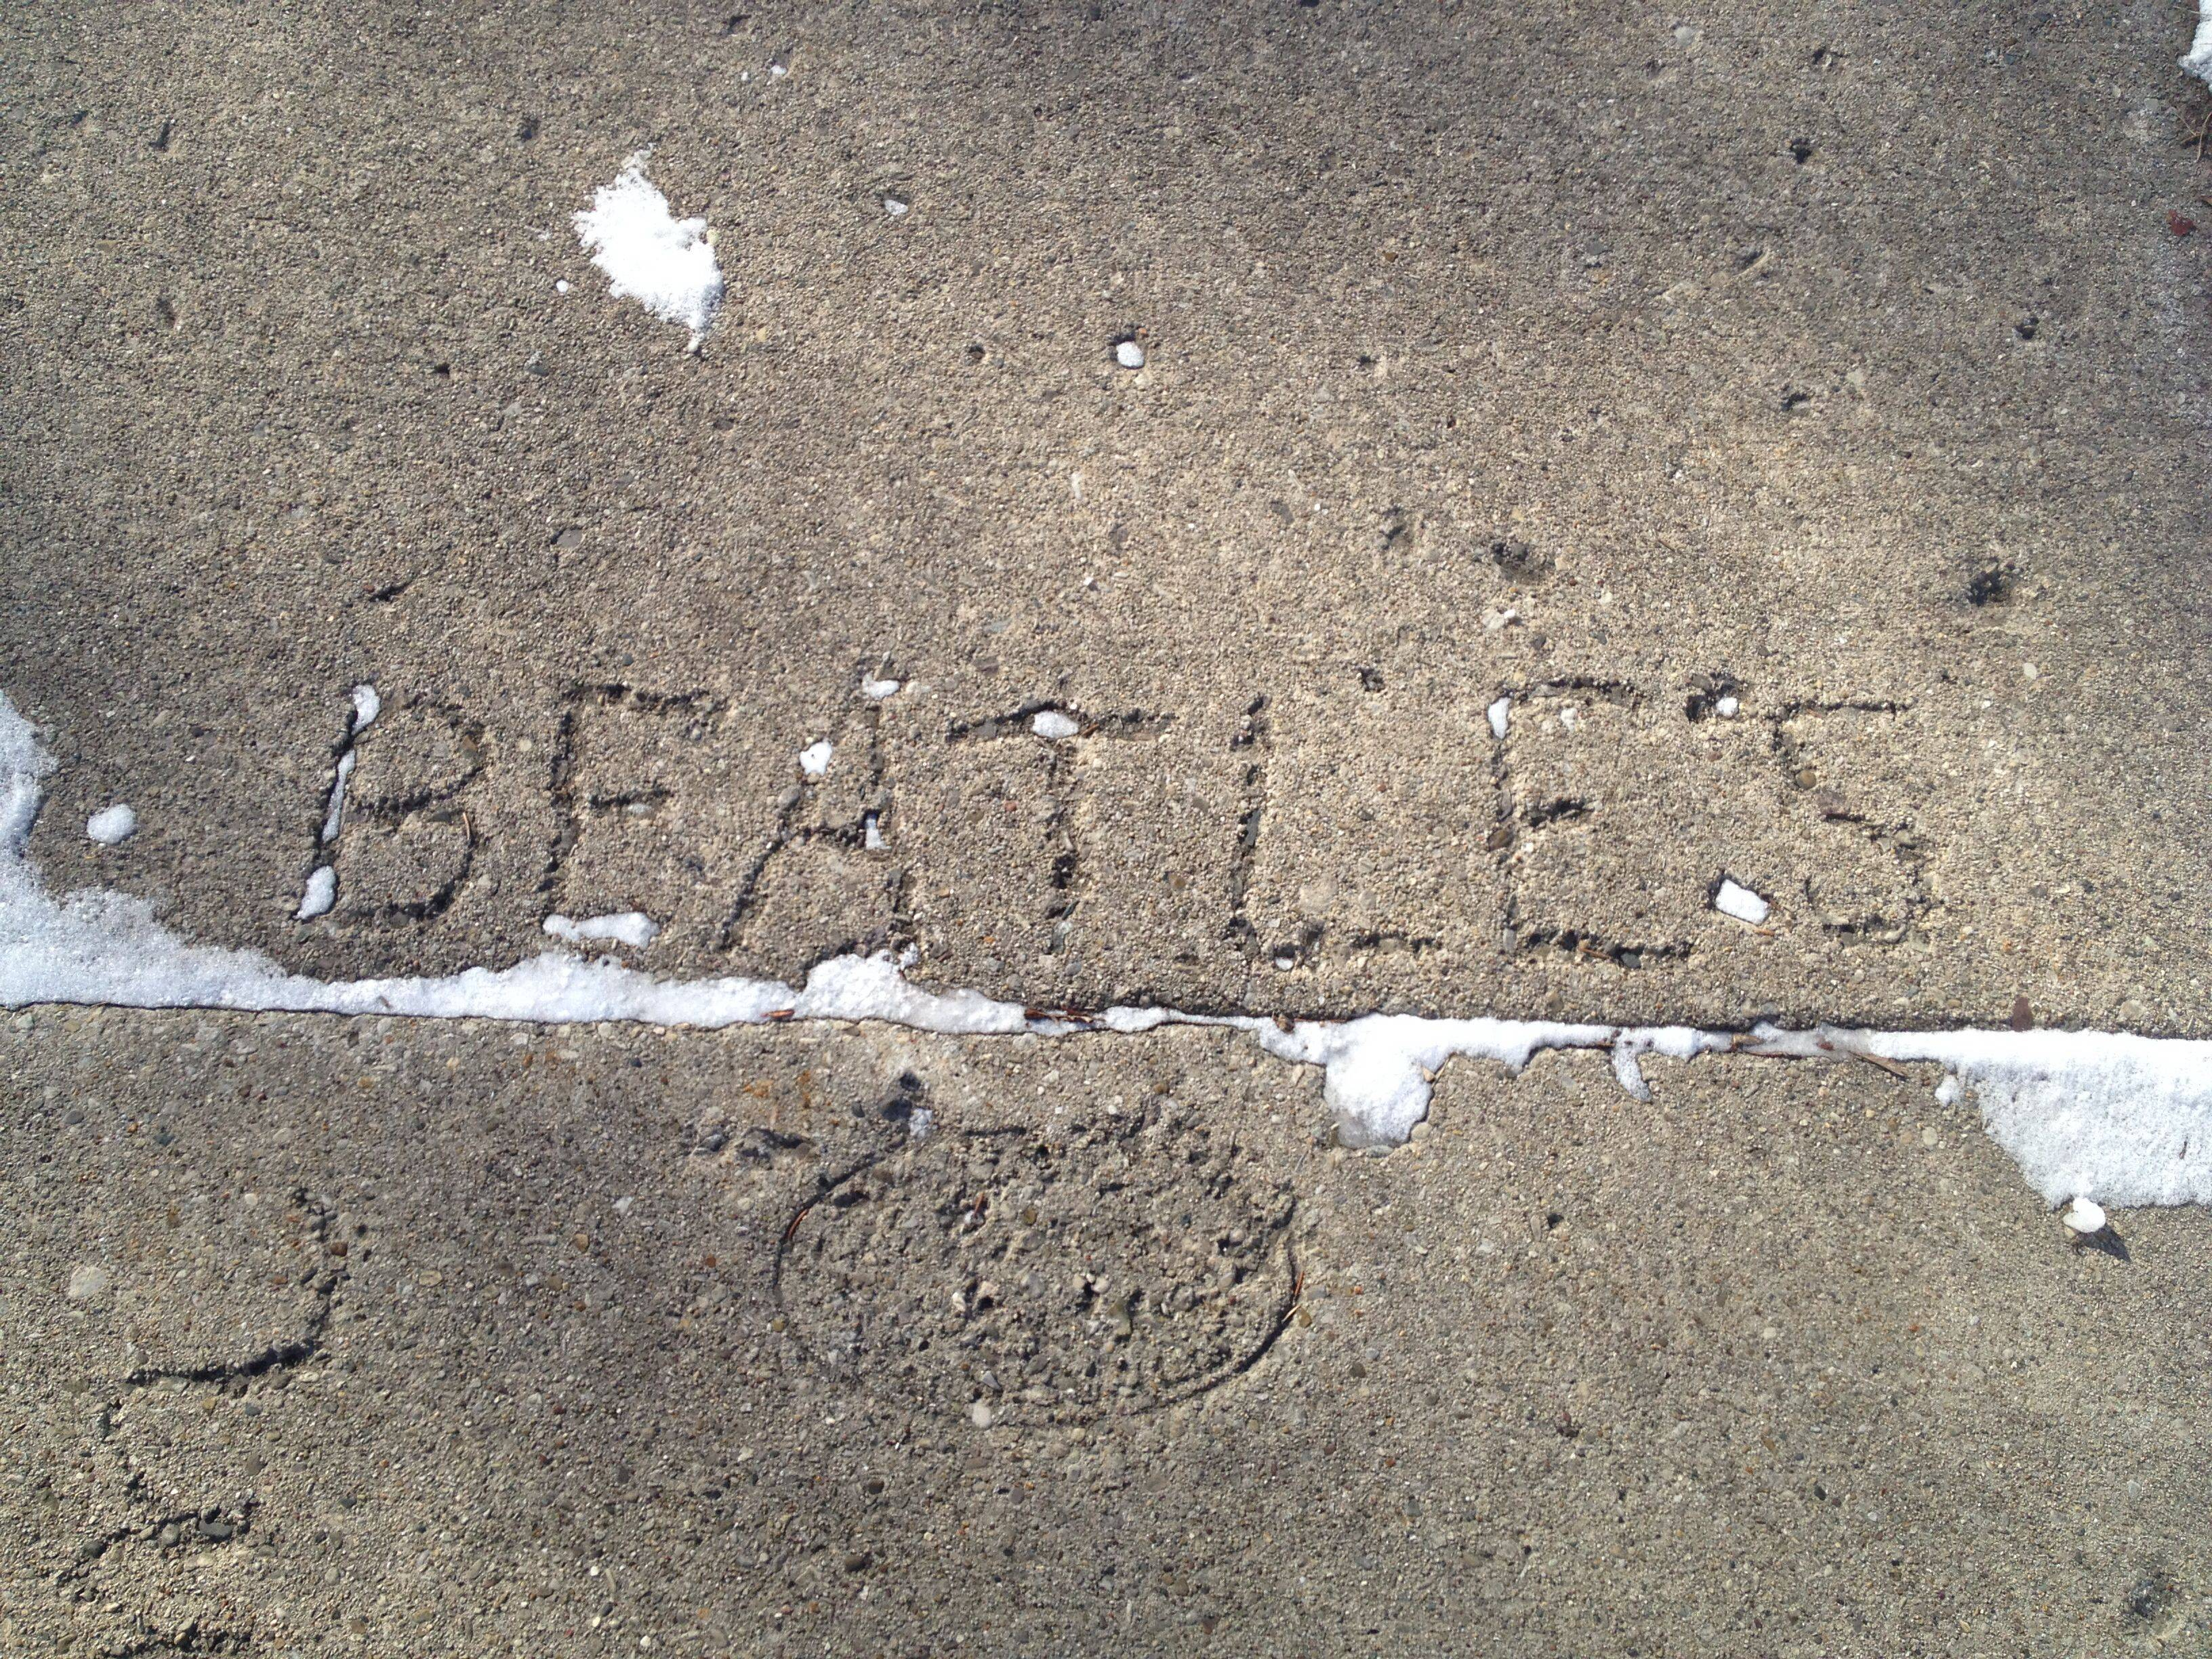 Having survived nearly five decades of winters, this homage to The Beatles still marks a sidewalk in Rolling Meadows.